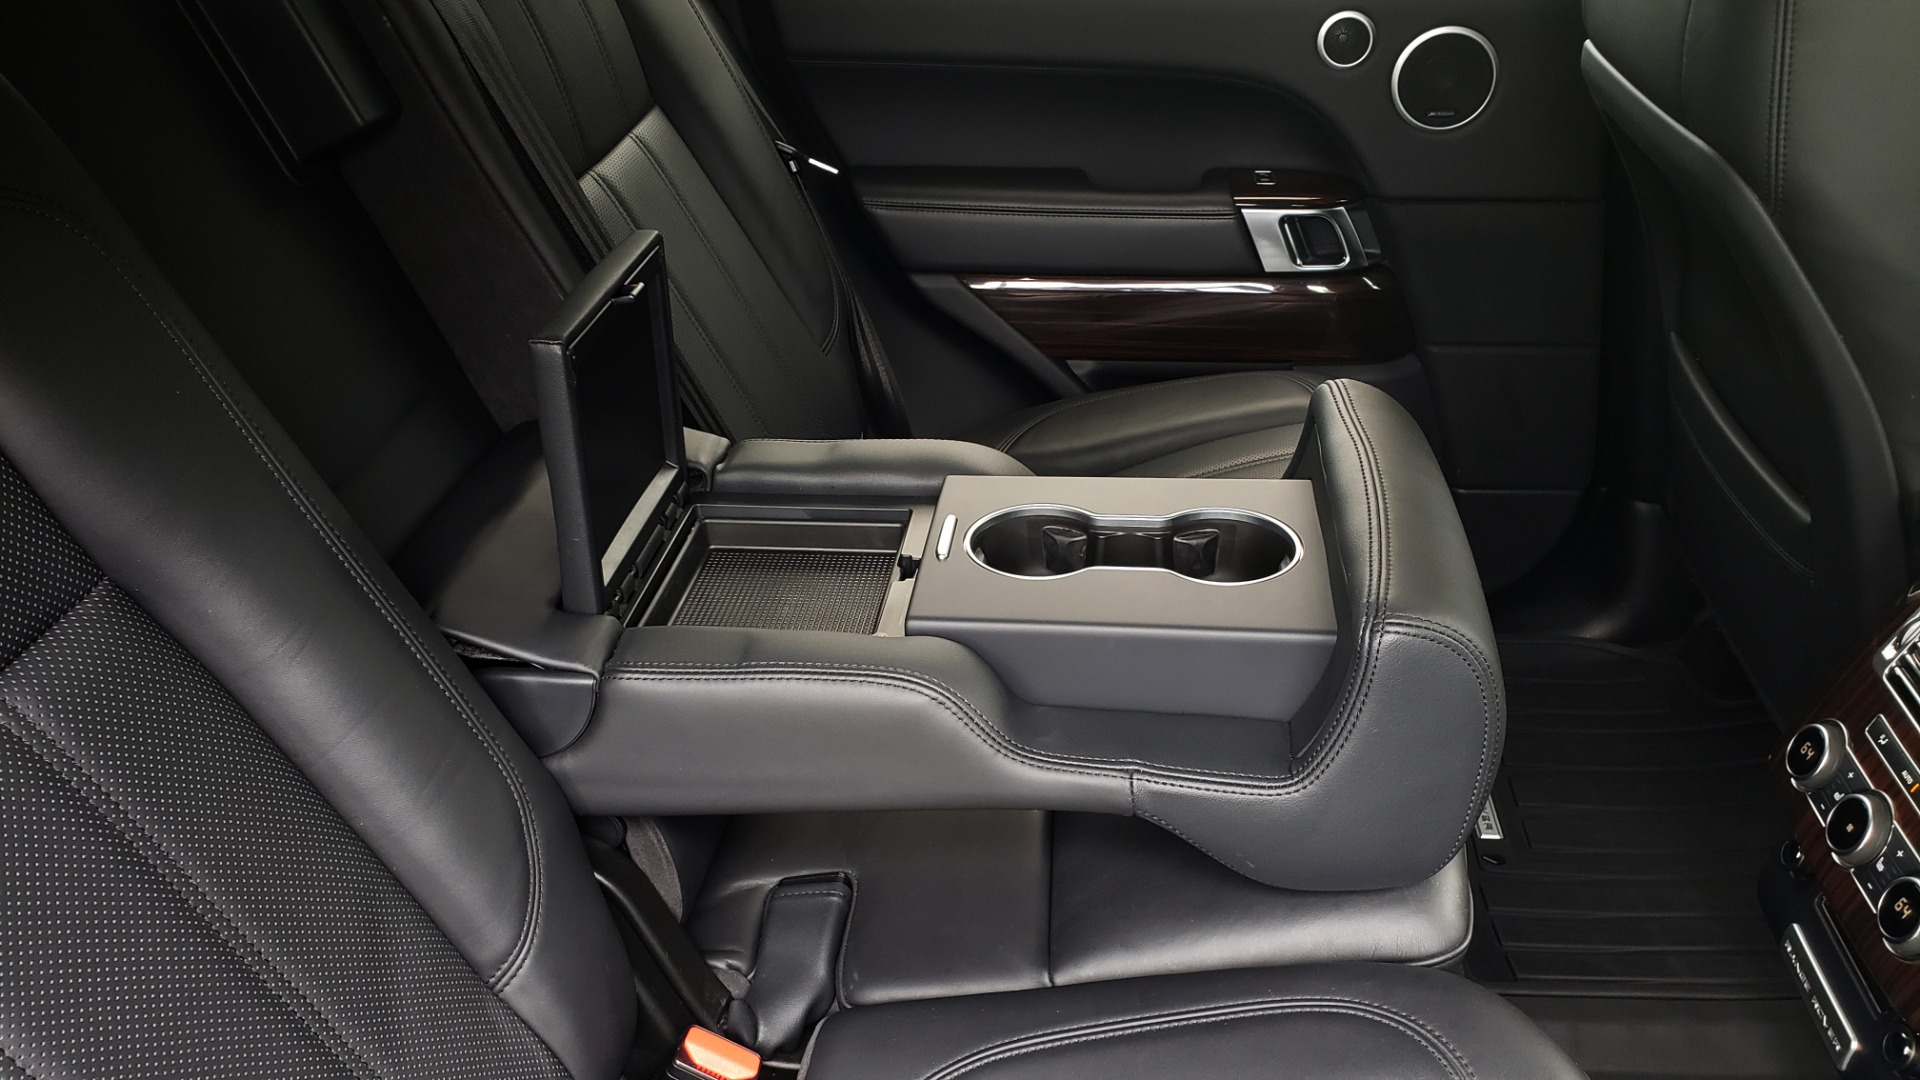 Used 2016 Land Rover Range Rover HSE 3.0L SC V6 / NAV / PANO-ROOF / VENT SEATS / REARVIEW / BLIND SPOT for sale Sold at Formula Imports in Charlotte NC 28227 78